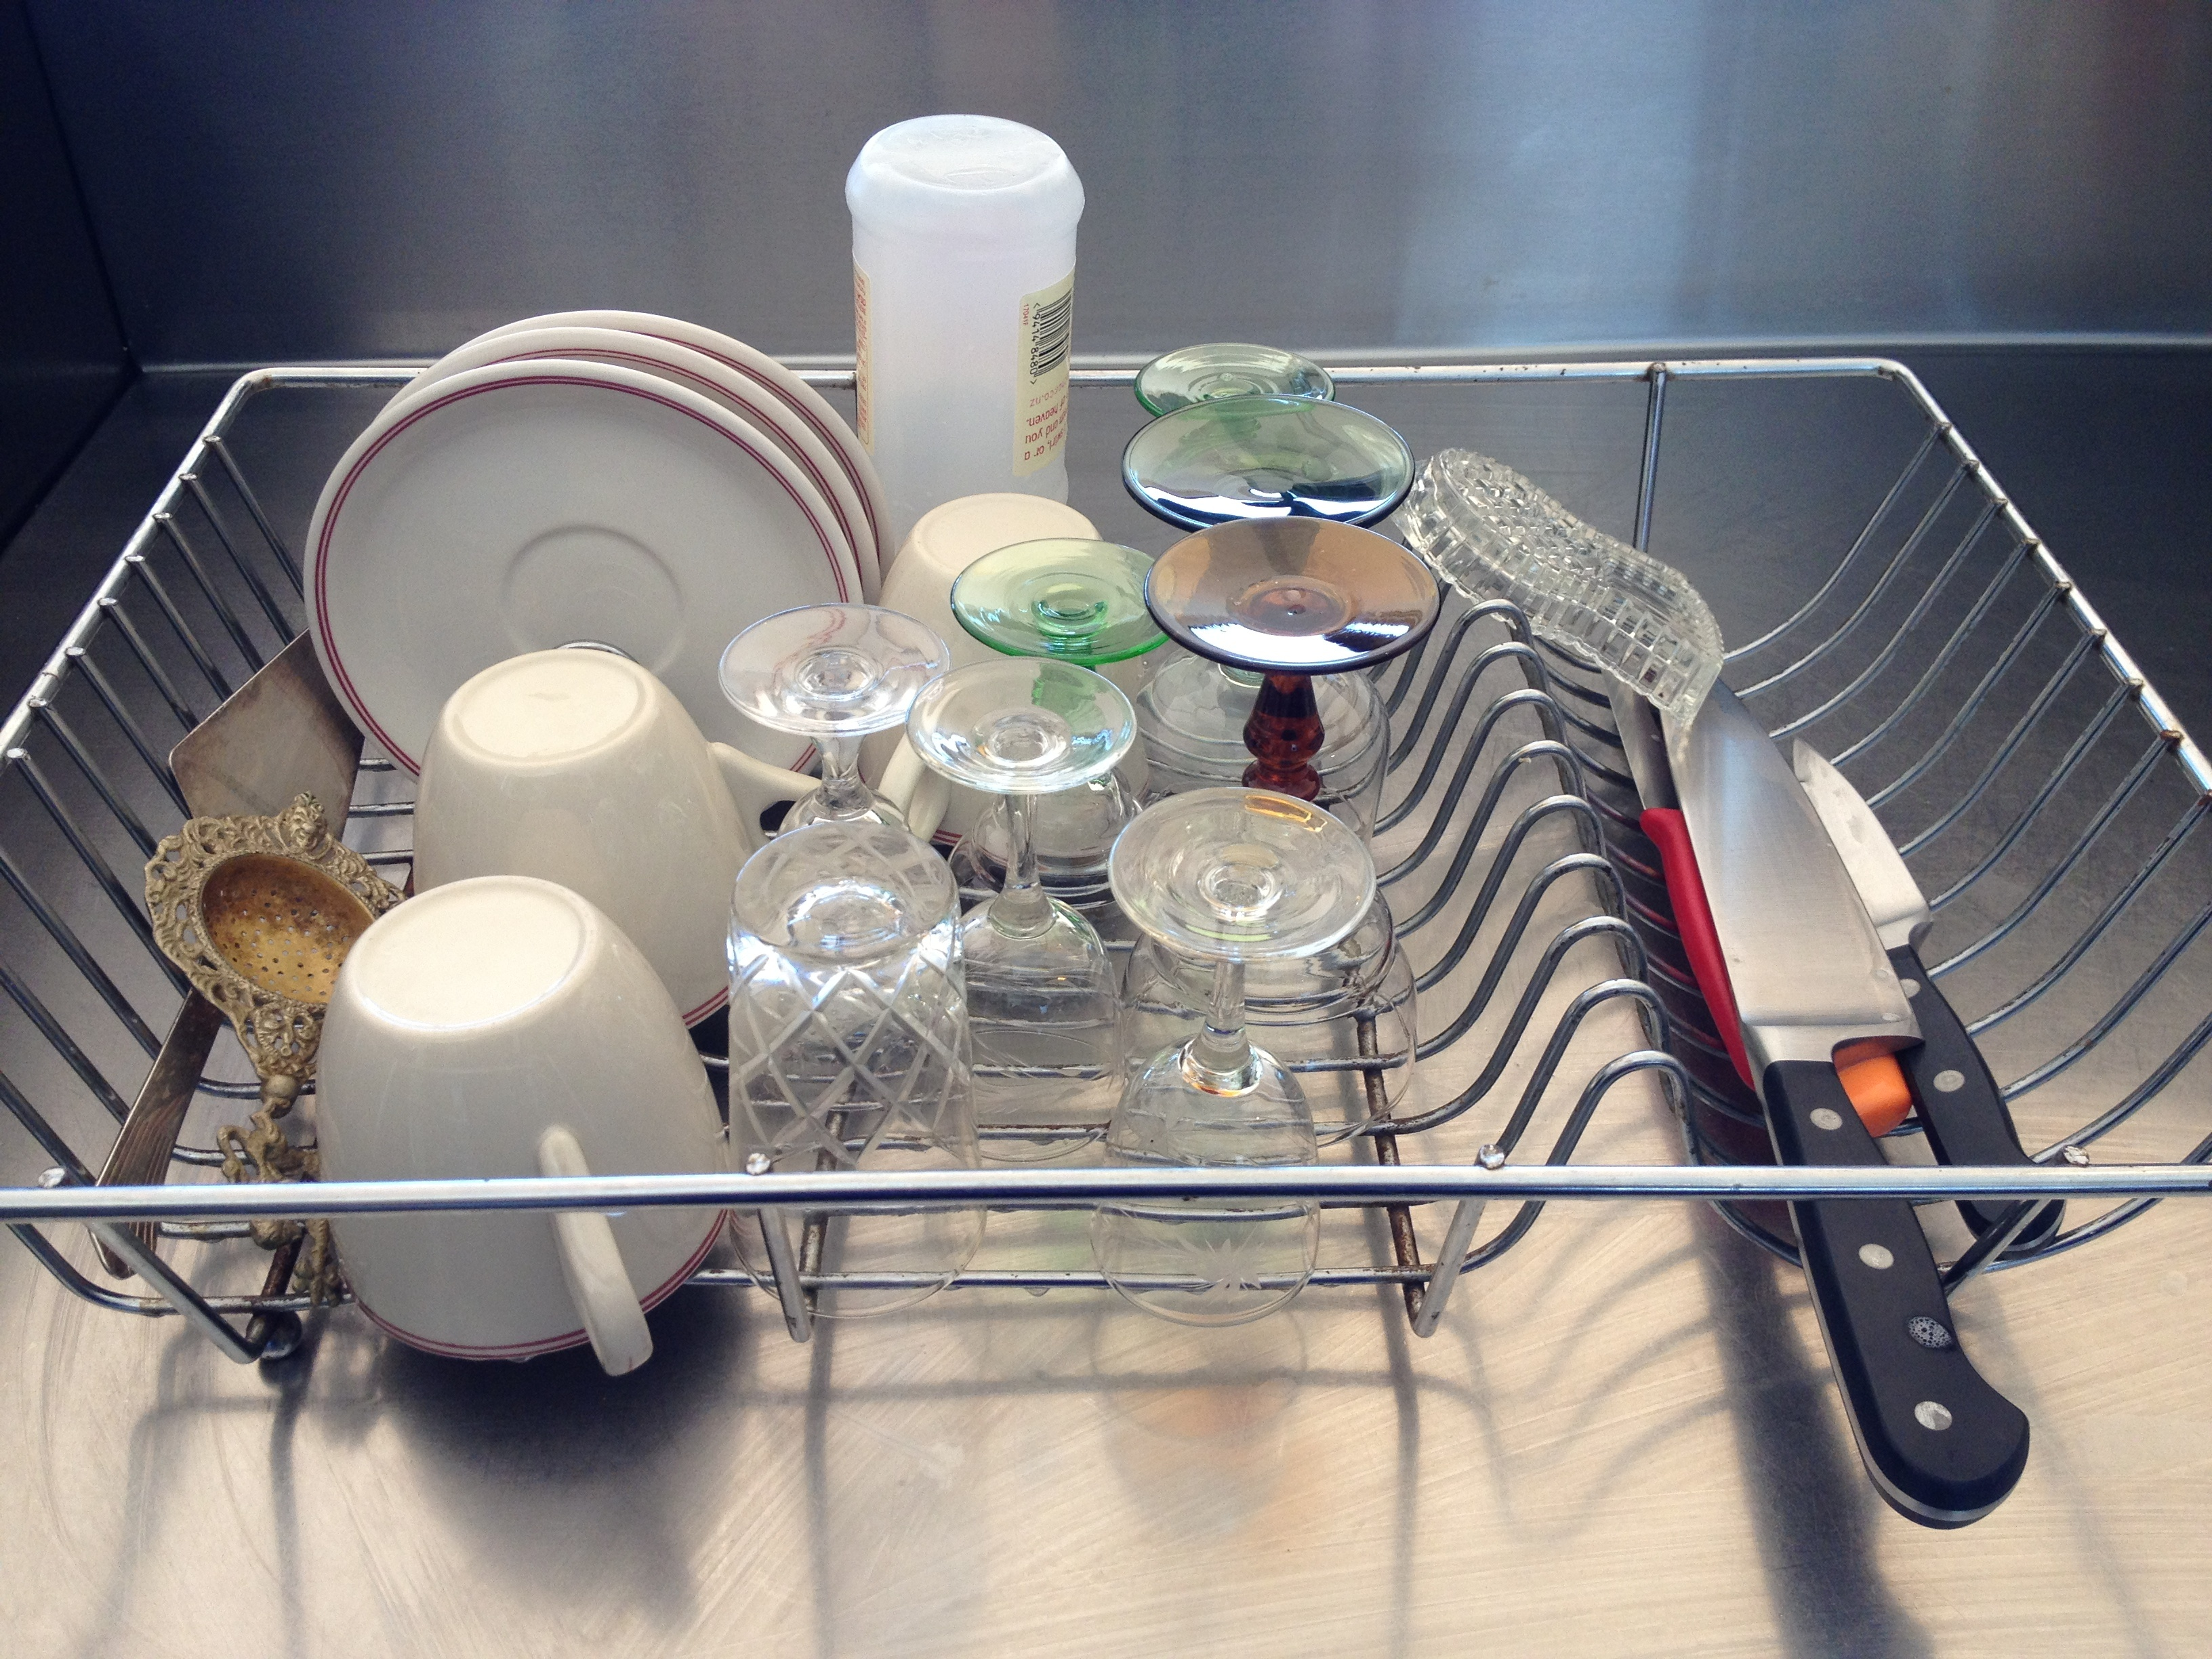 10 things you should keep away from your dishwasher